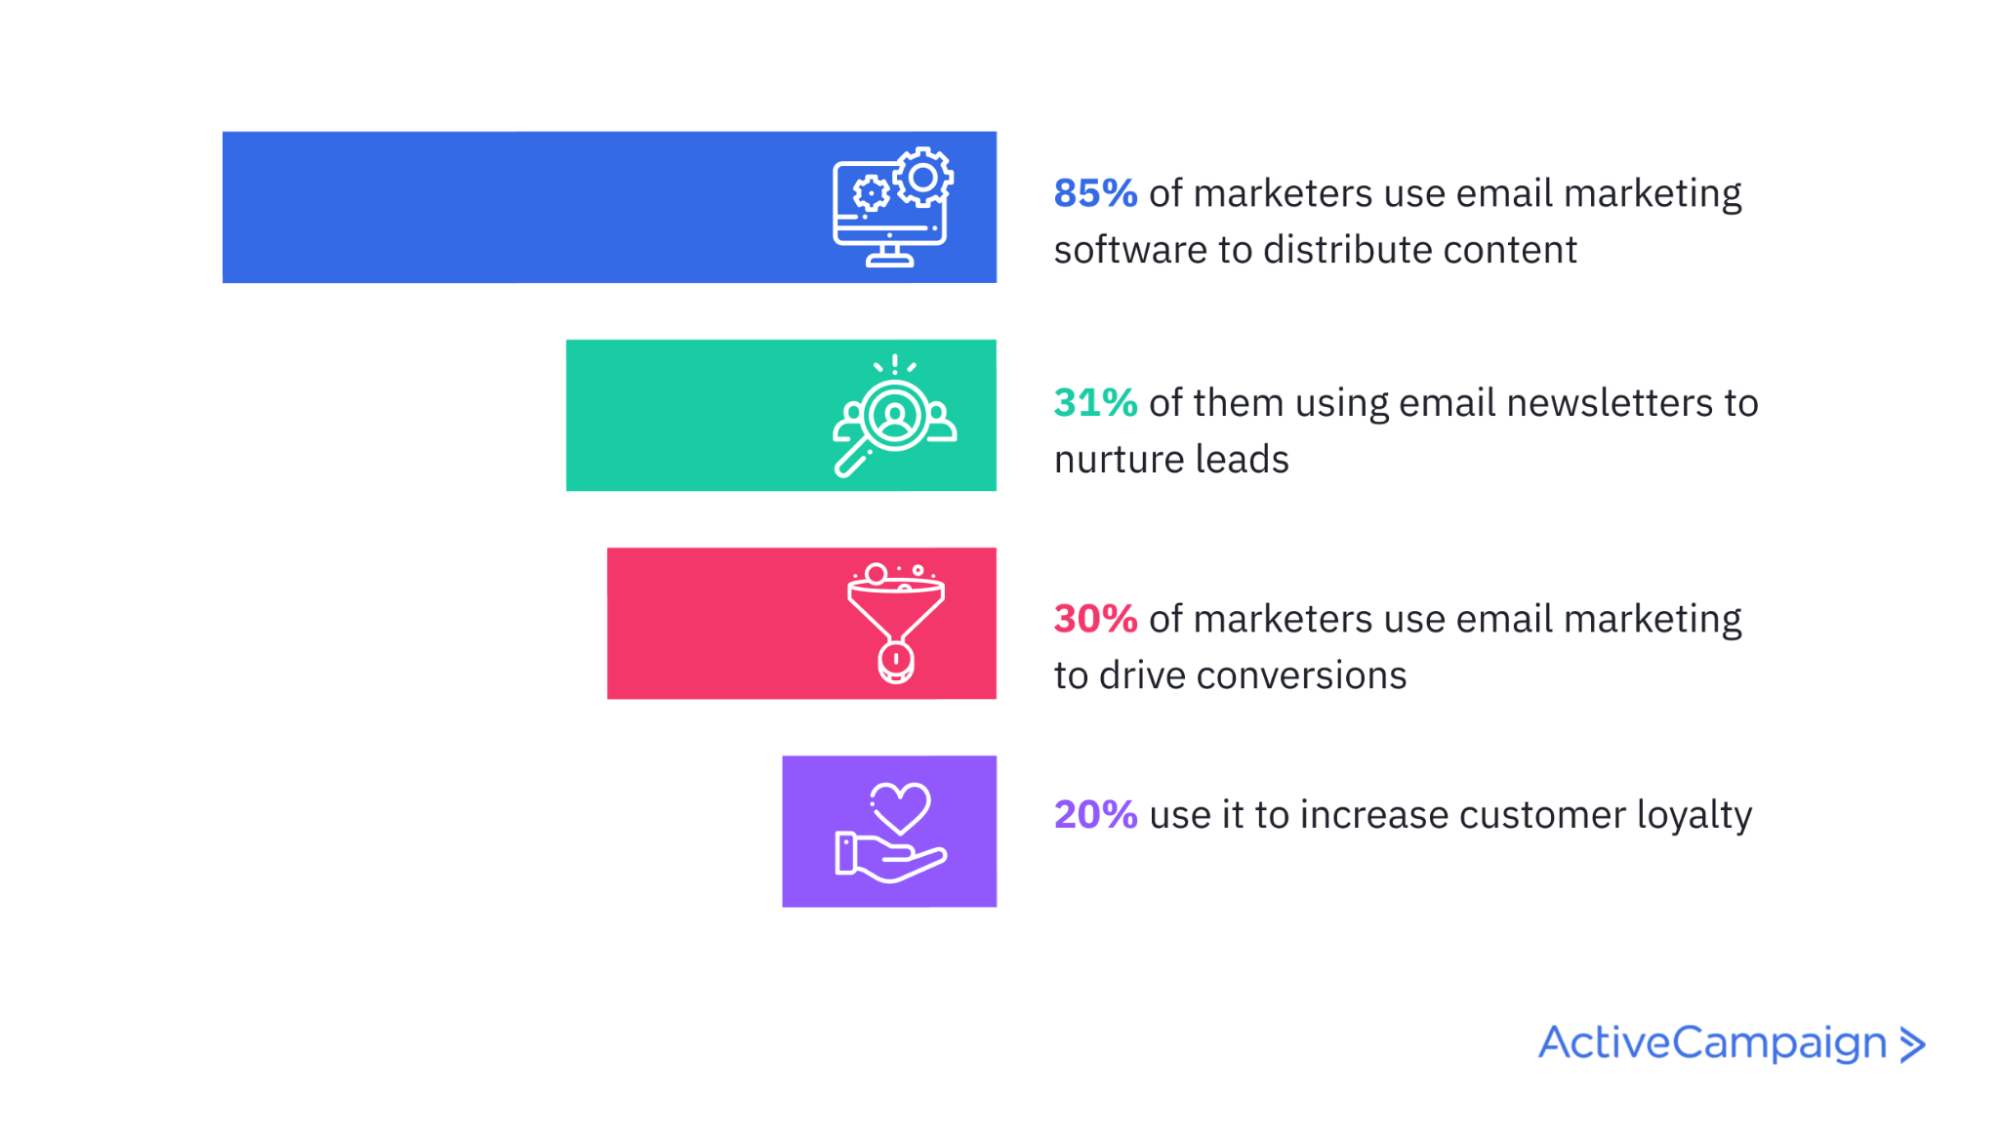 email statistics infographic stating 85% of marketers use email marketing software to distribute content